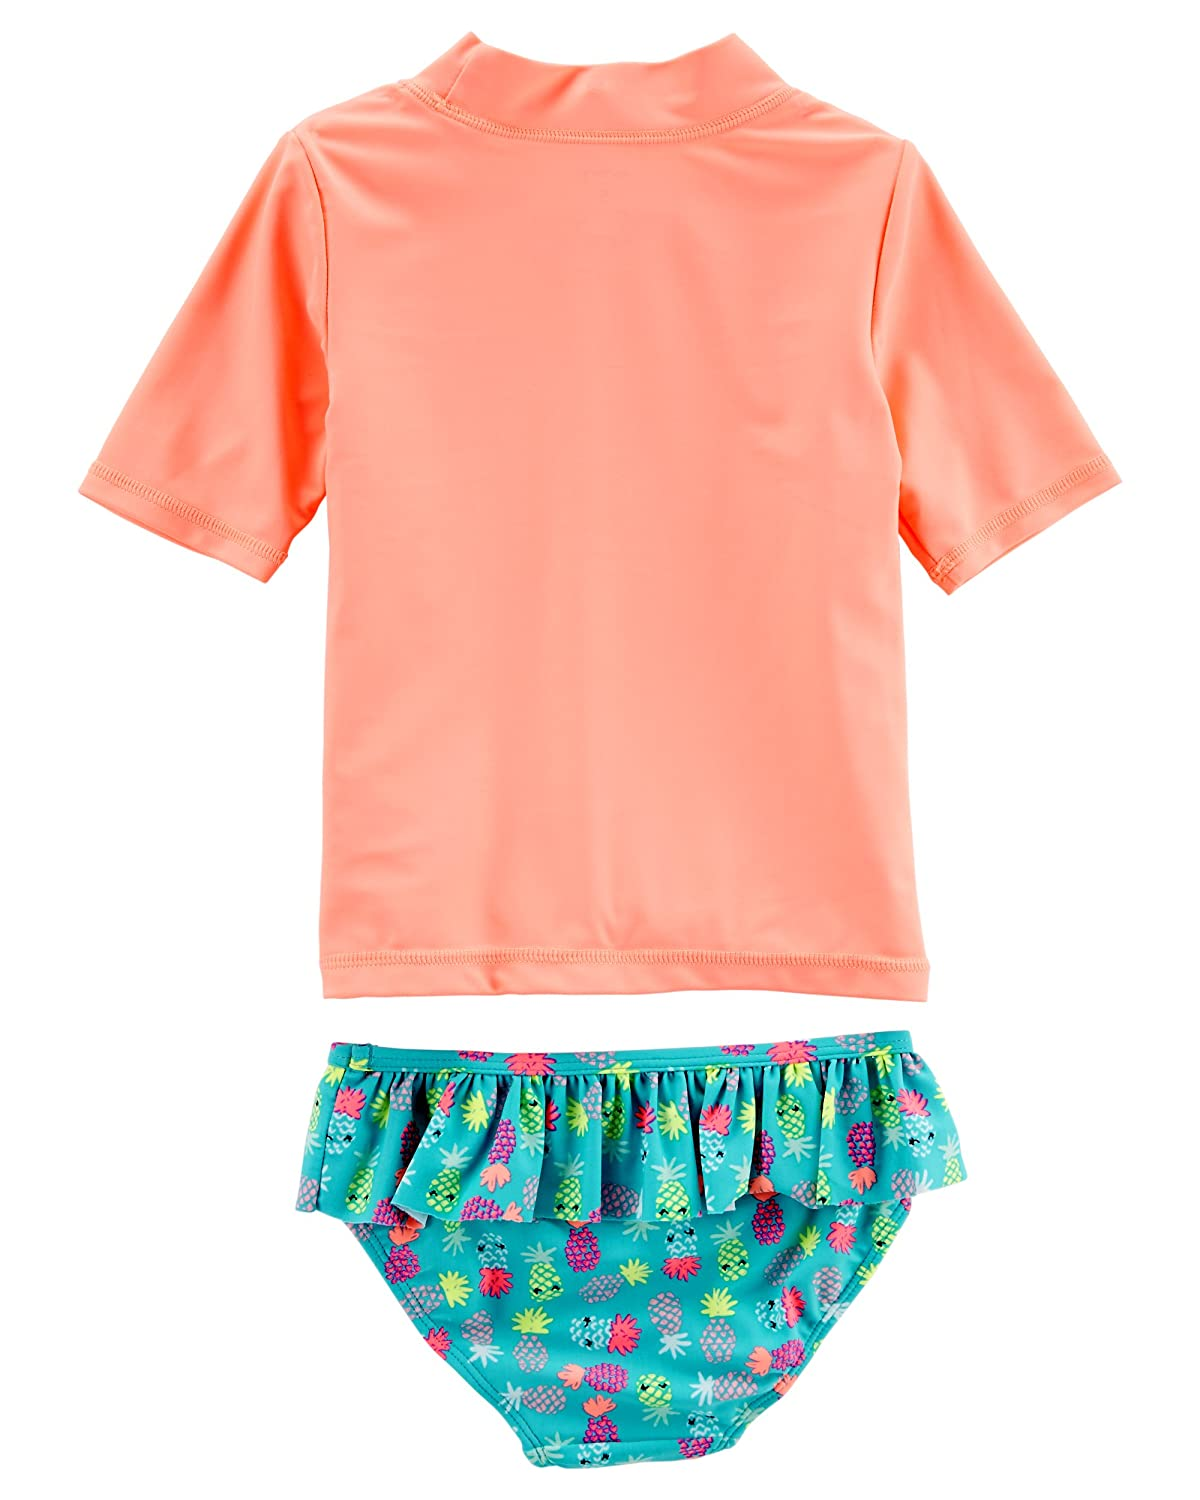 Carters Big Girls Two Piece Swimsuit